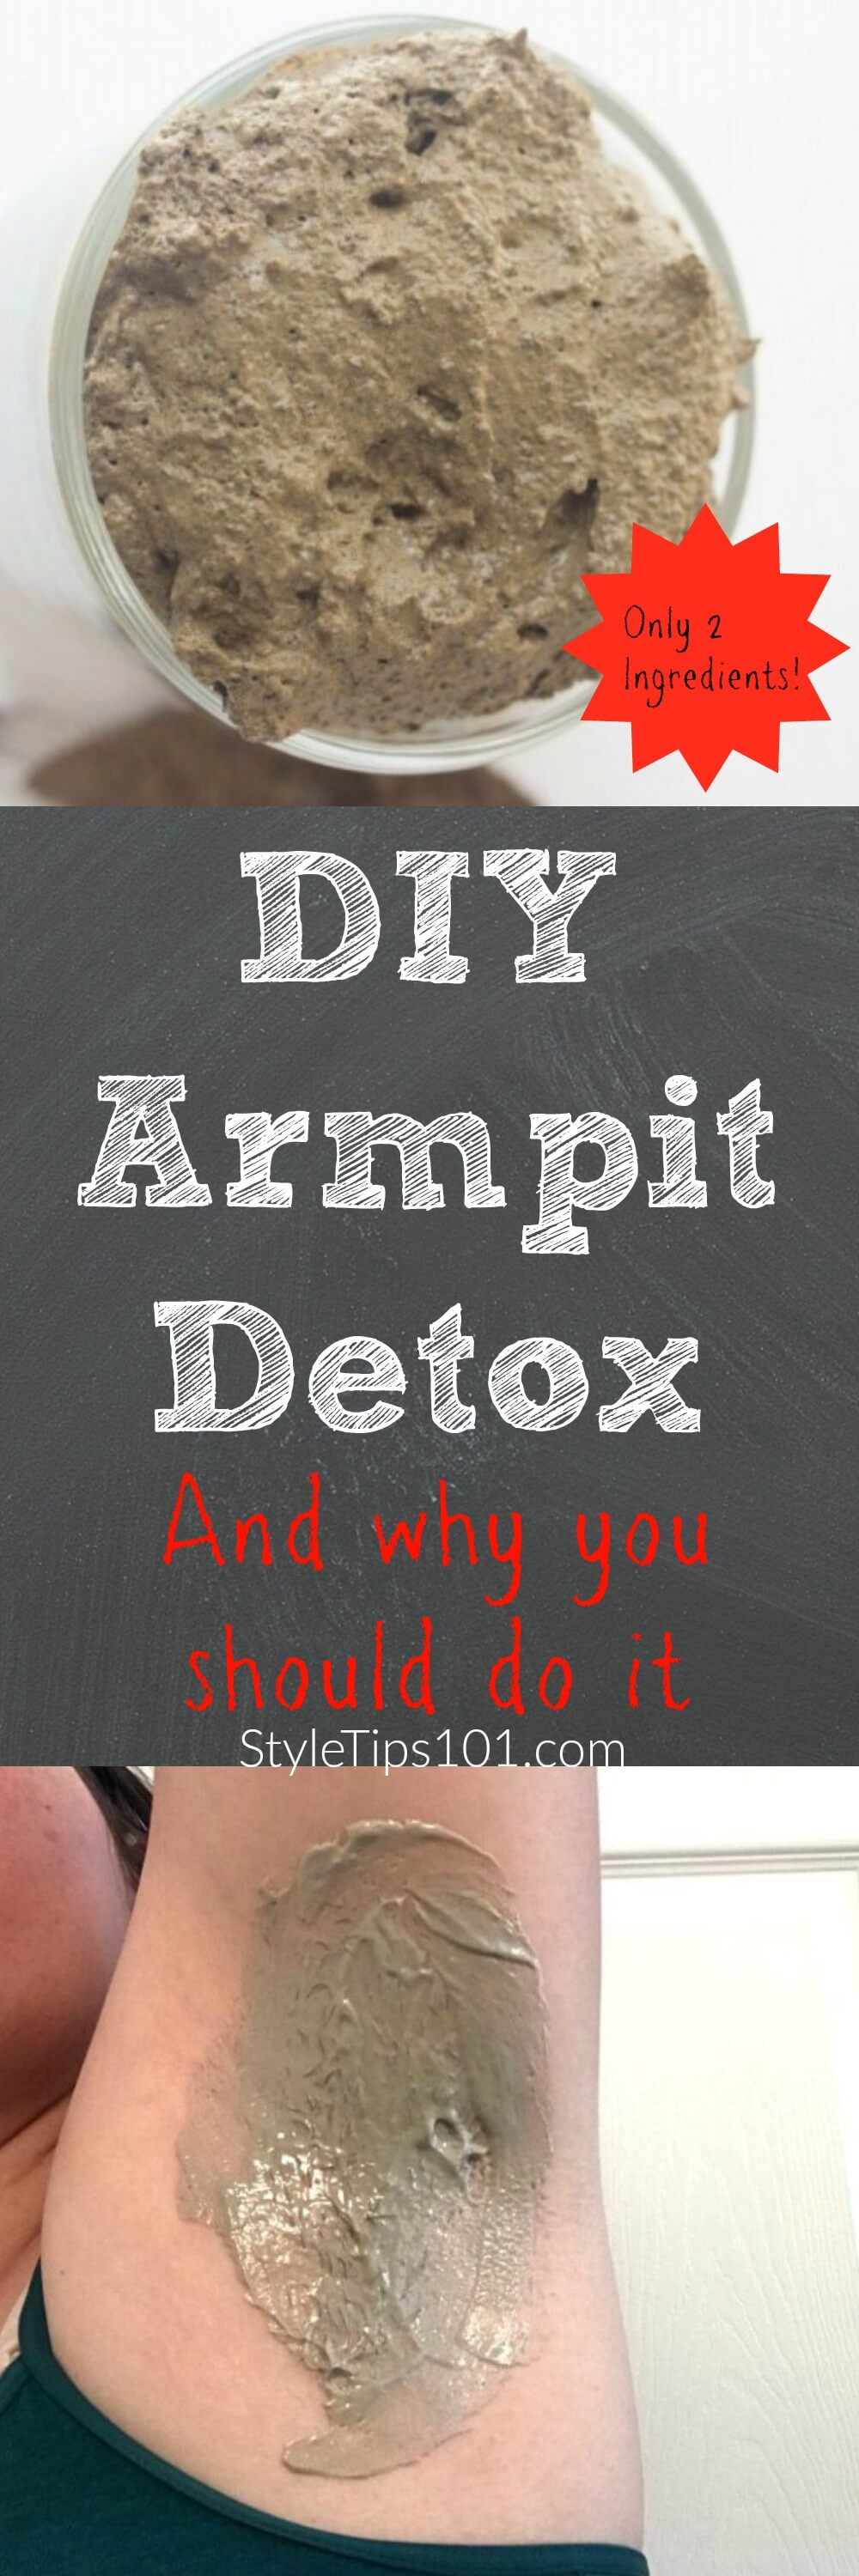 DIY Armpit Detox and Why You Should Do It